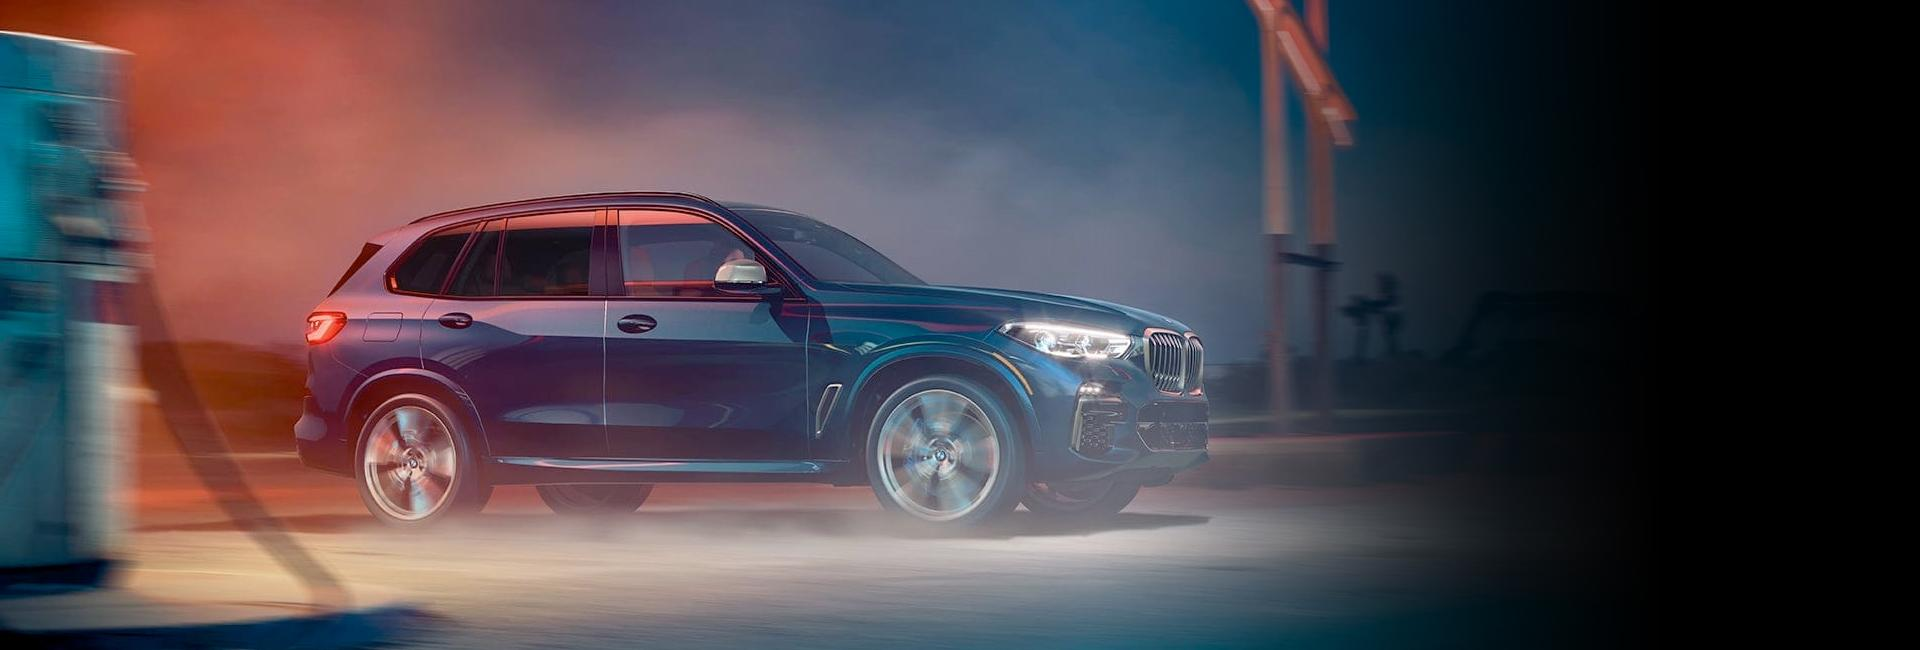 Side profile view of a 2021 BMW X5